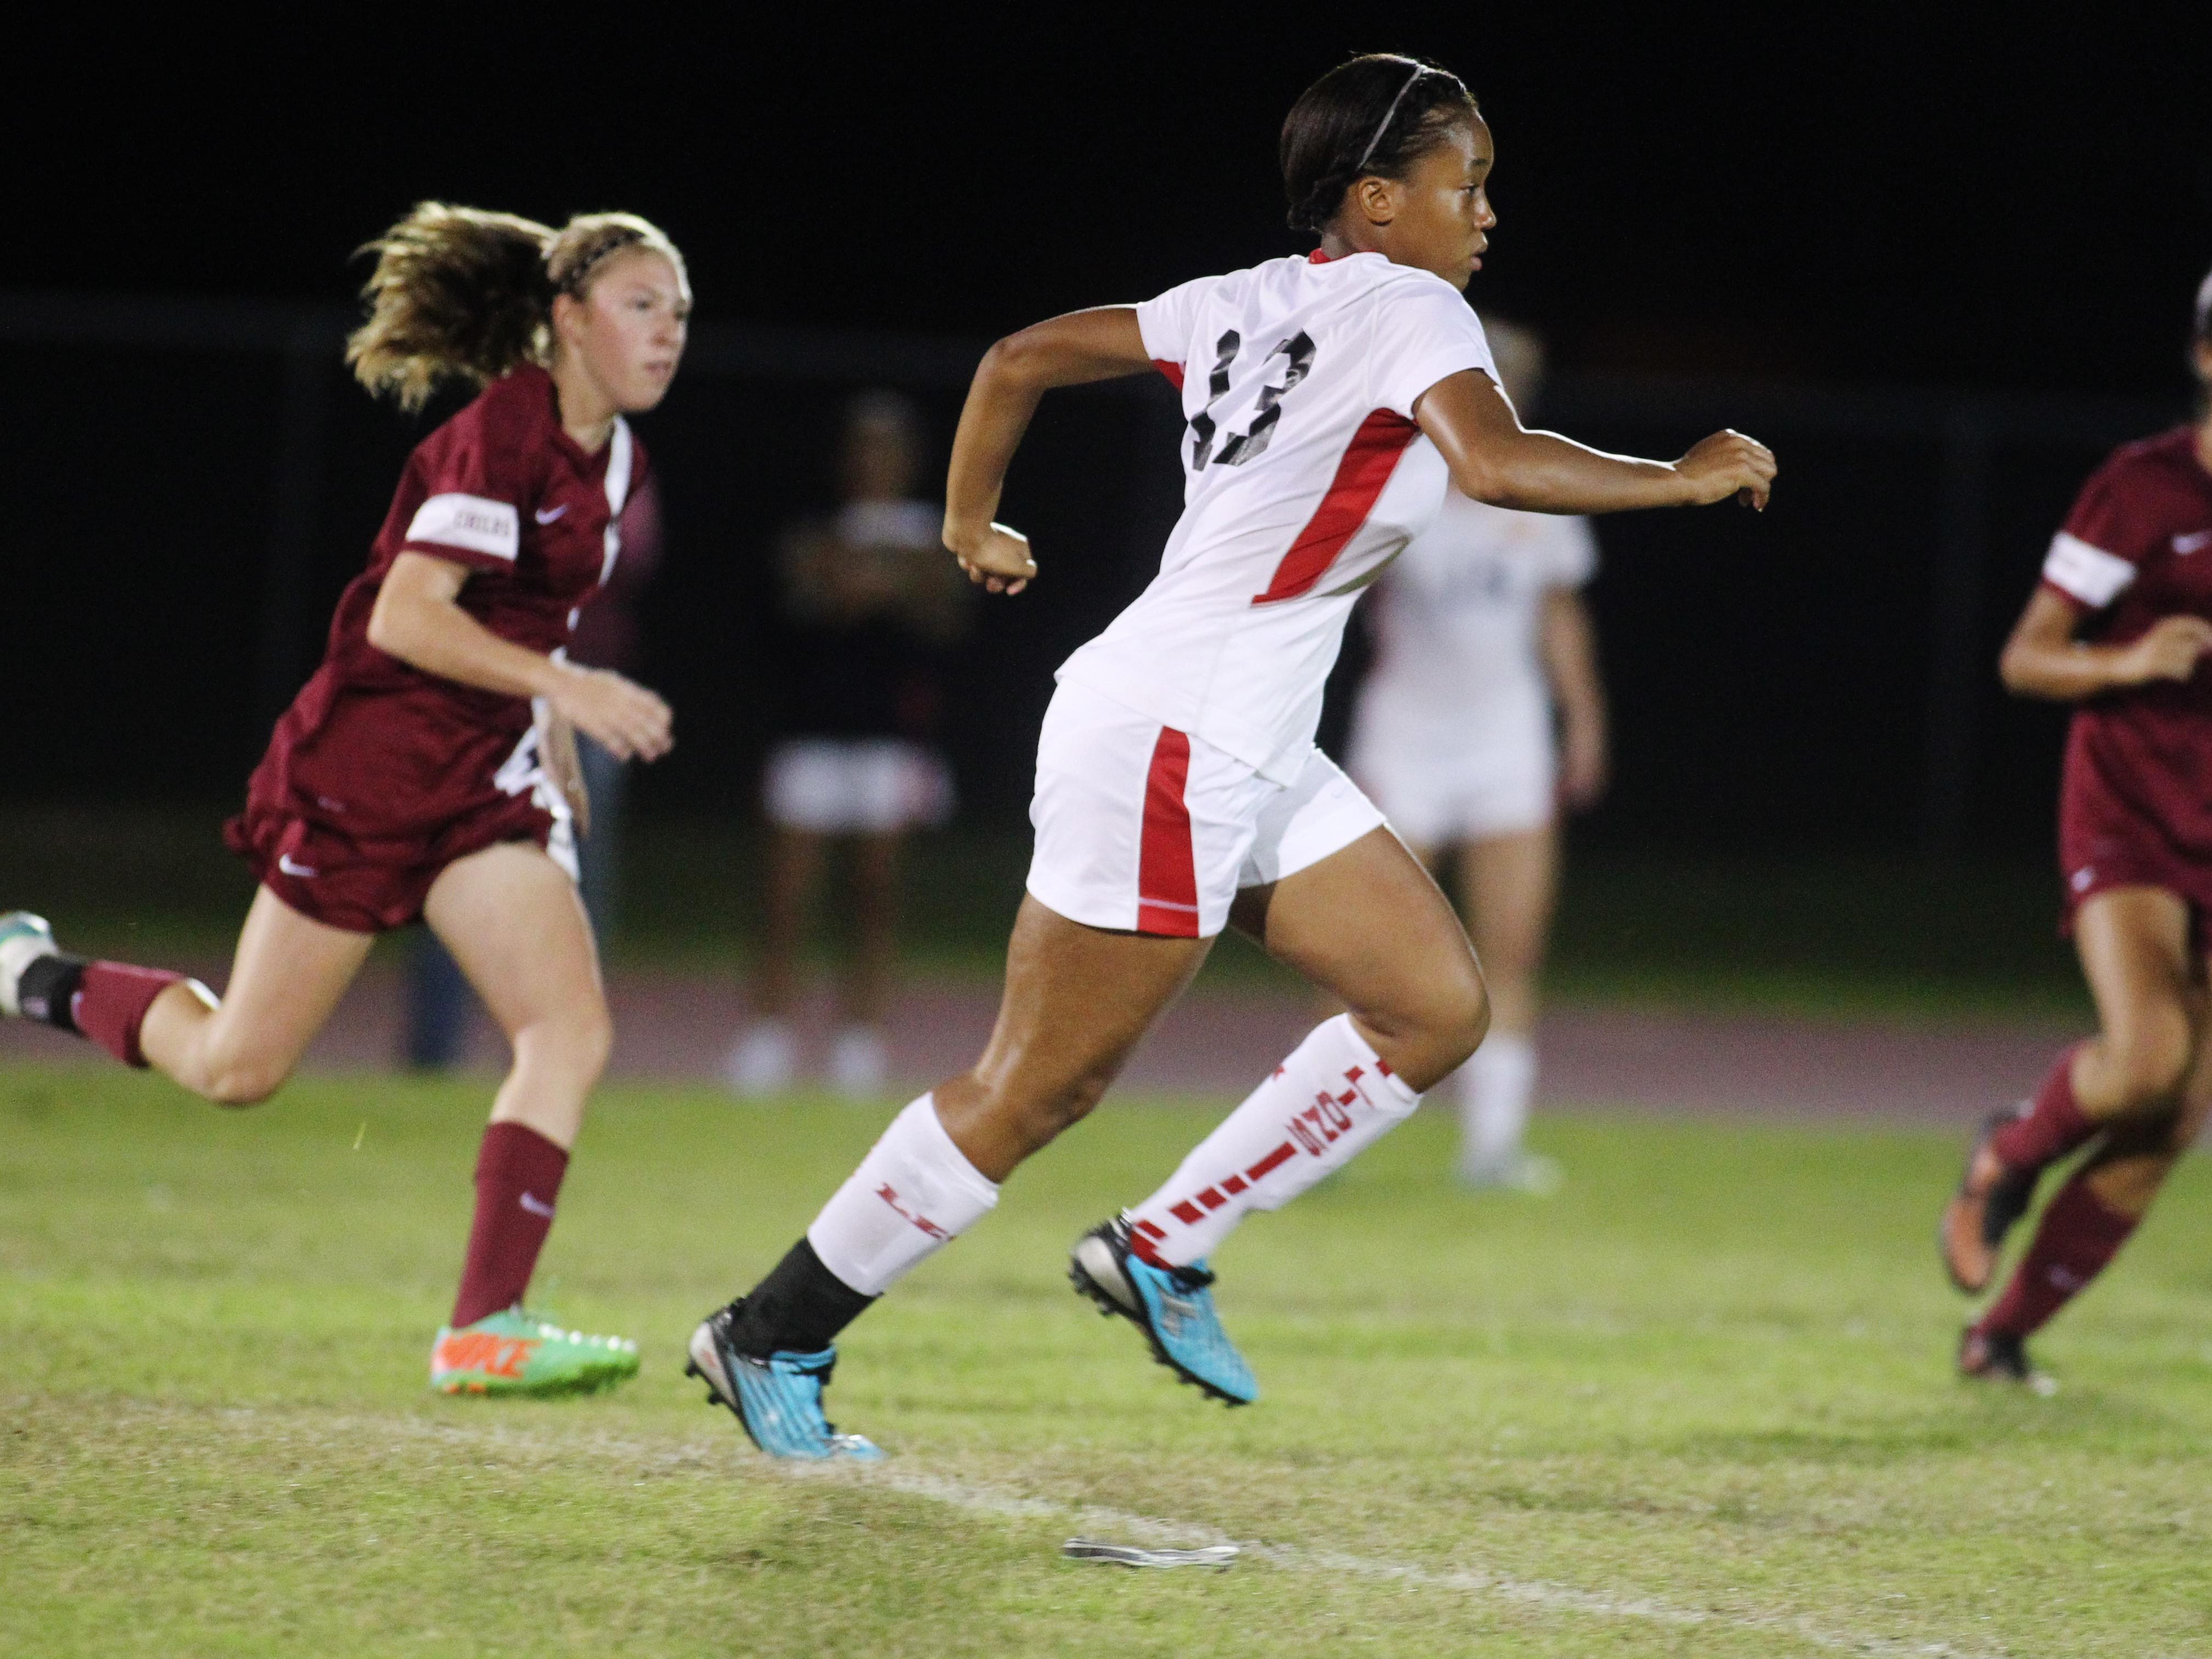 Leon defender Jennifer Shotwell-Long chases down a through ball in a game between Leon and Chiles on Tuesday night. The Lions won 3-0.